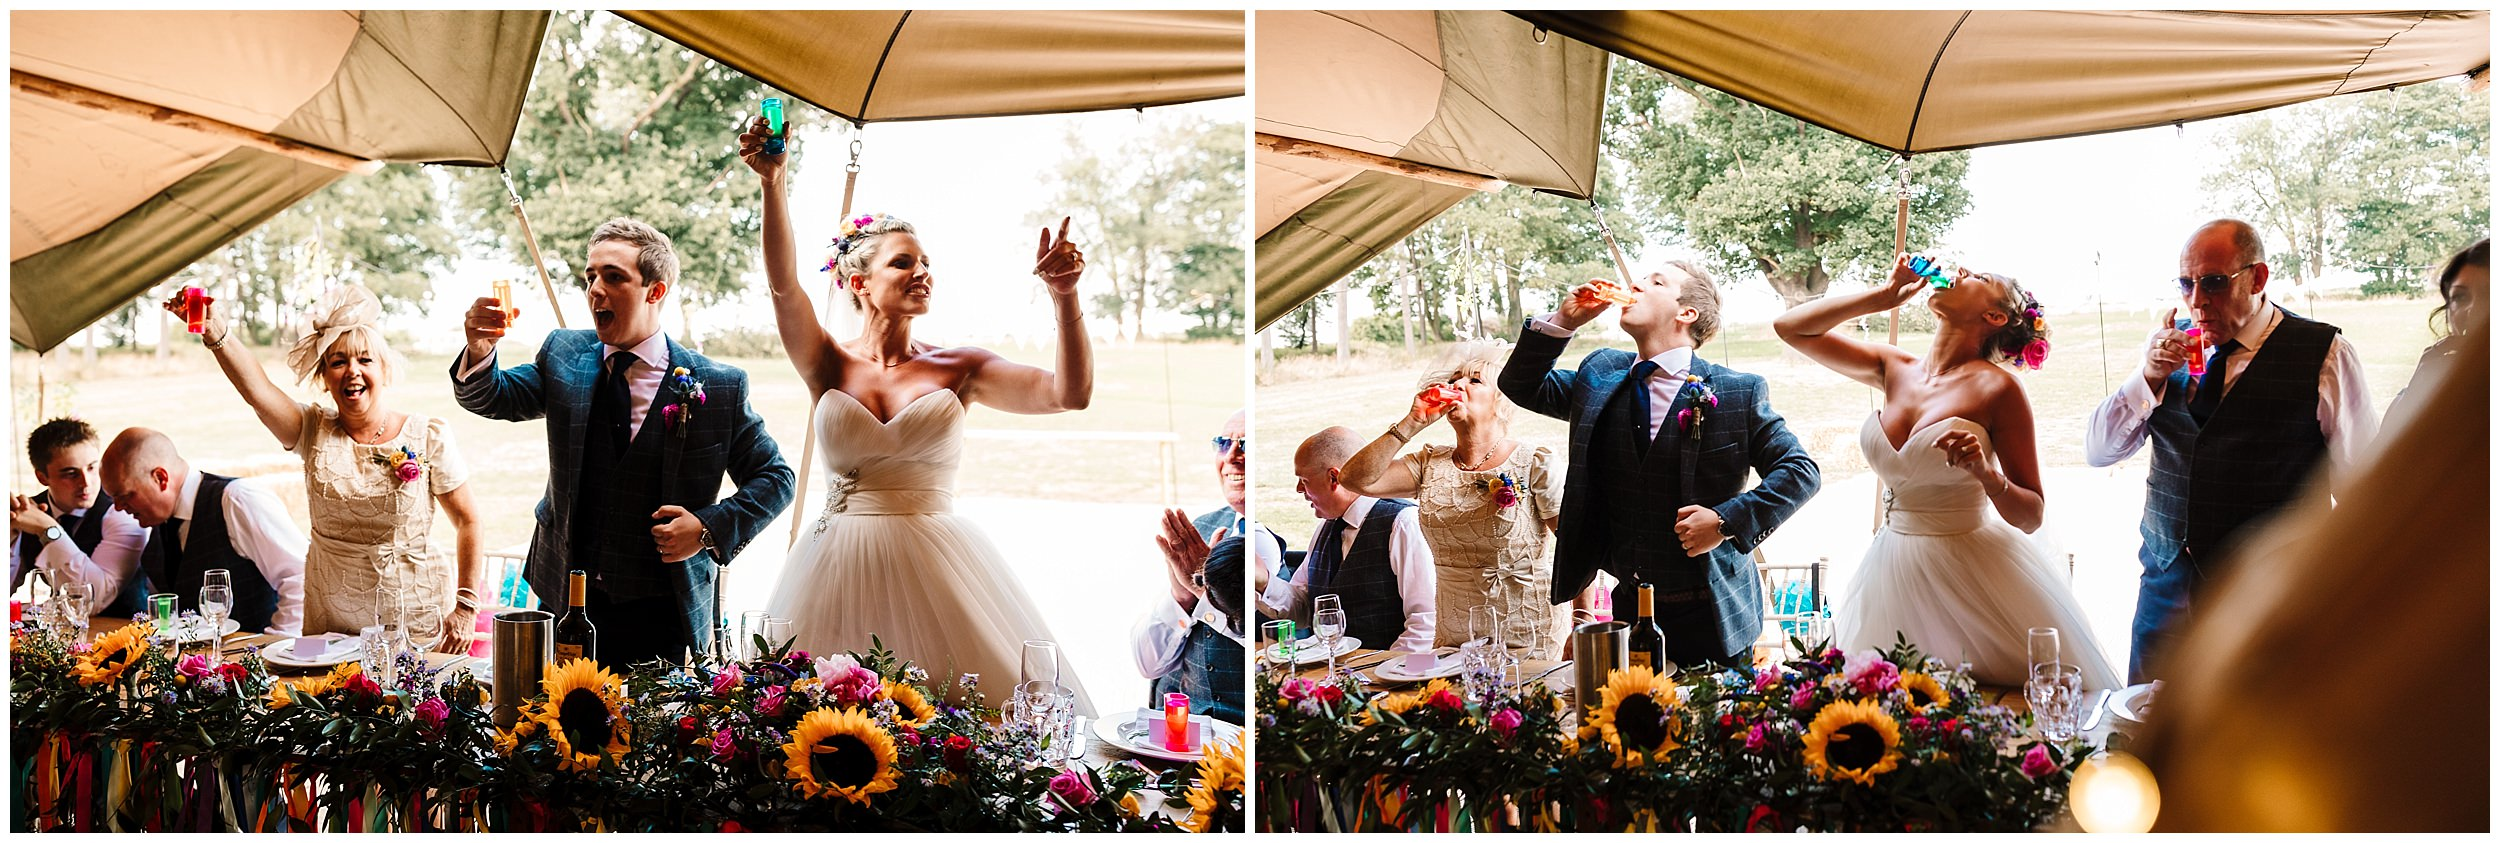 wedding guests doing shots at a wedding in a tipi